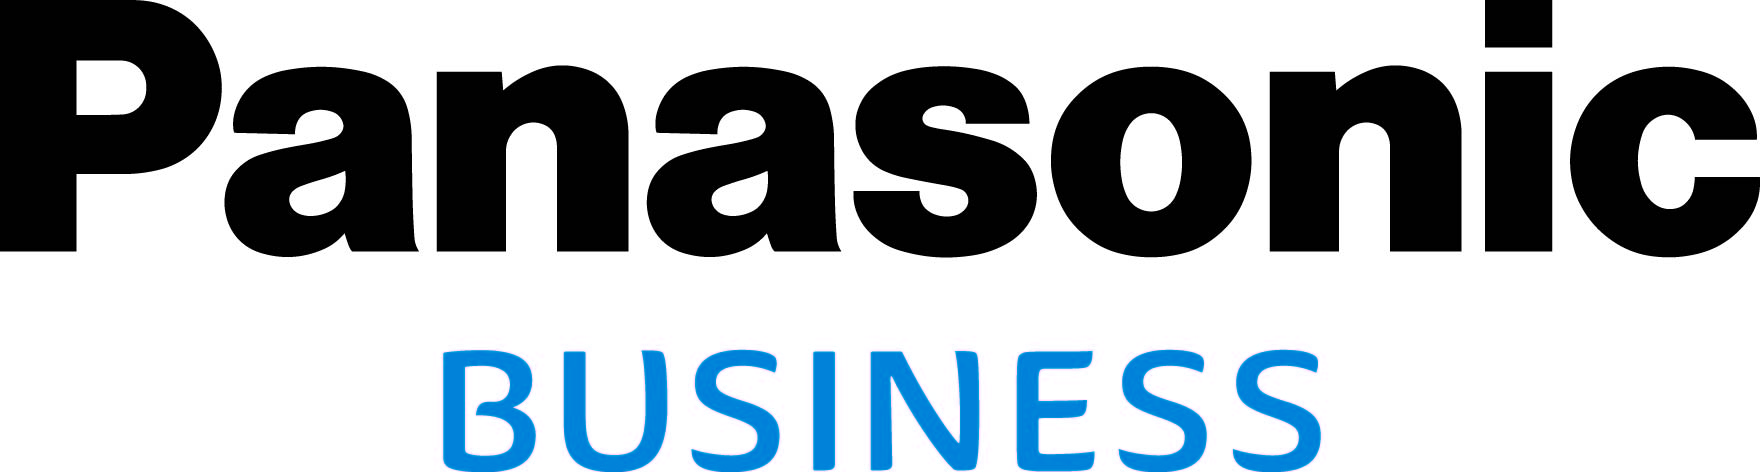 Panasonic Business fondo blanco